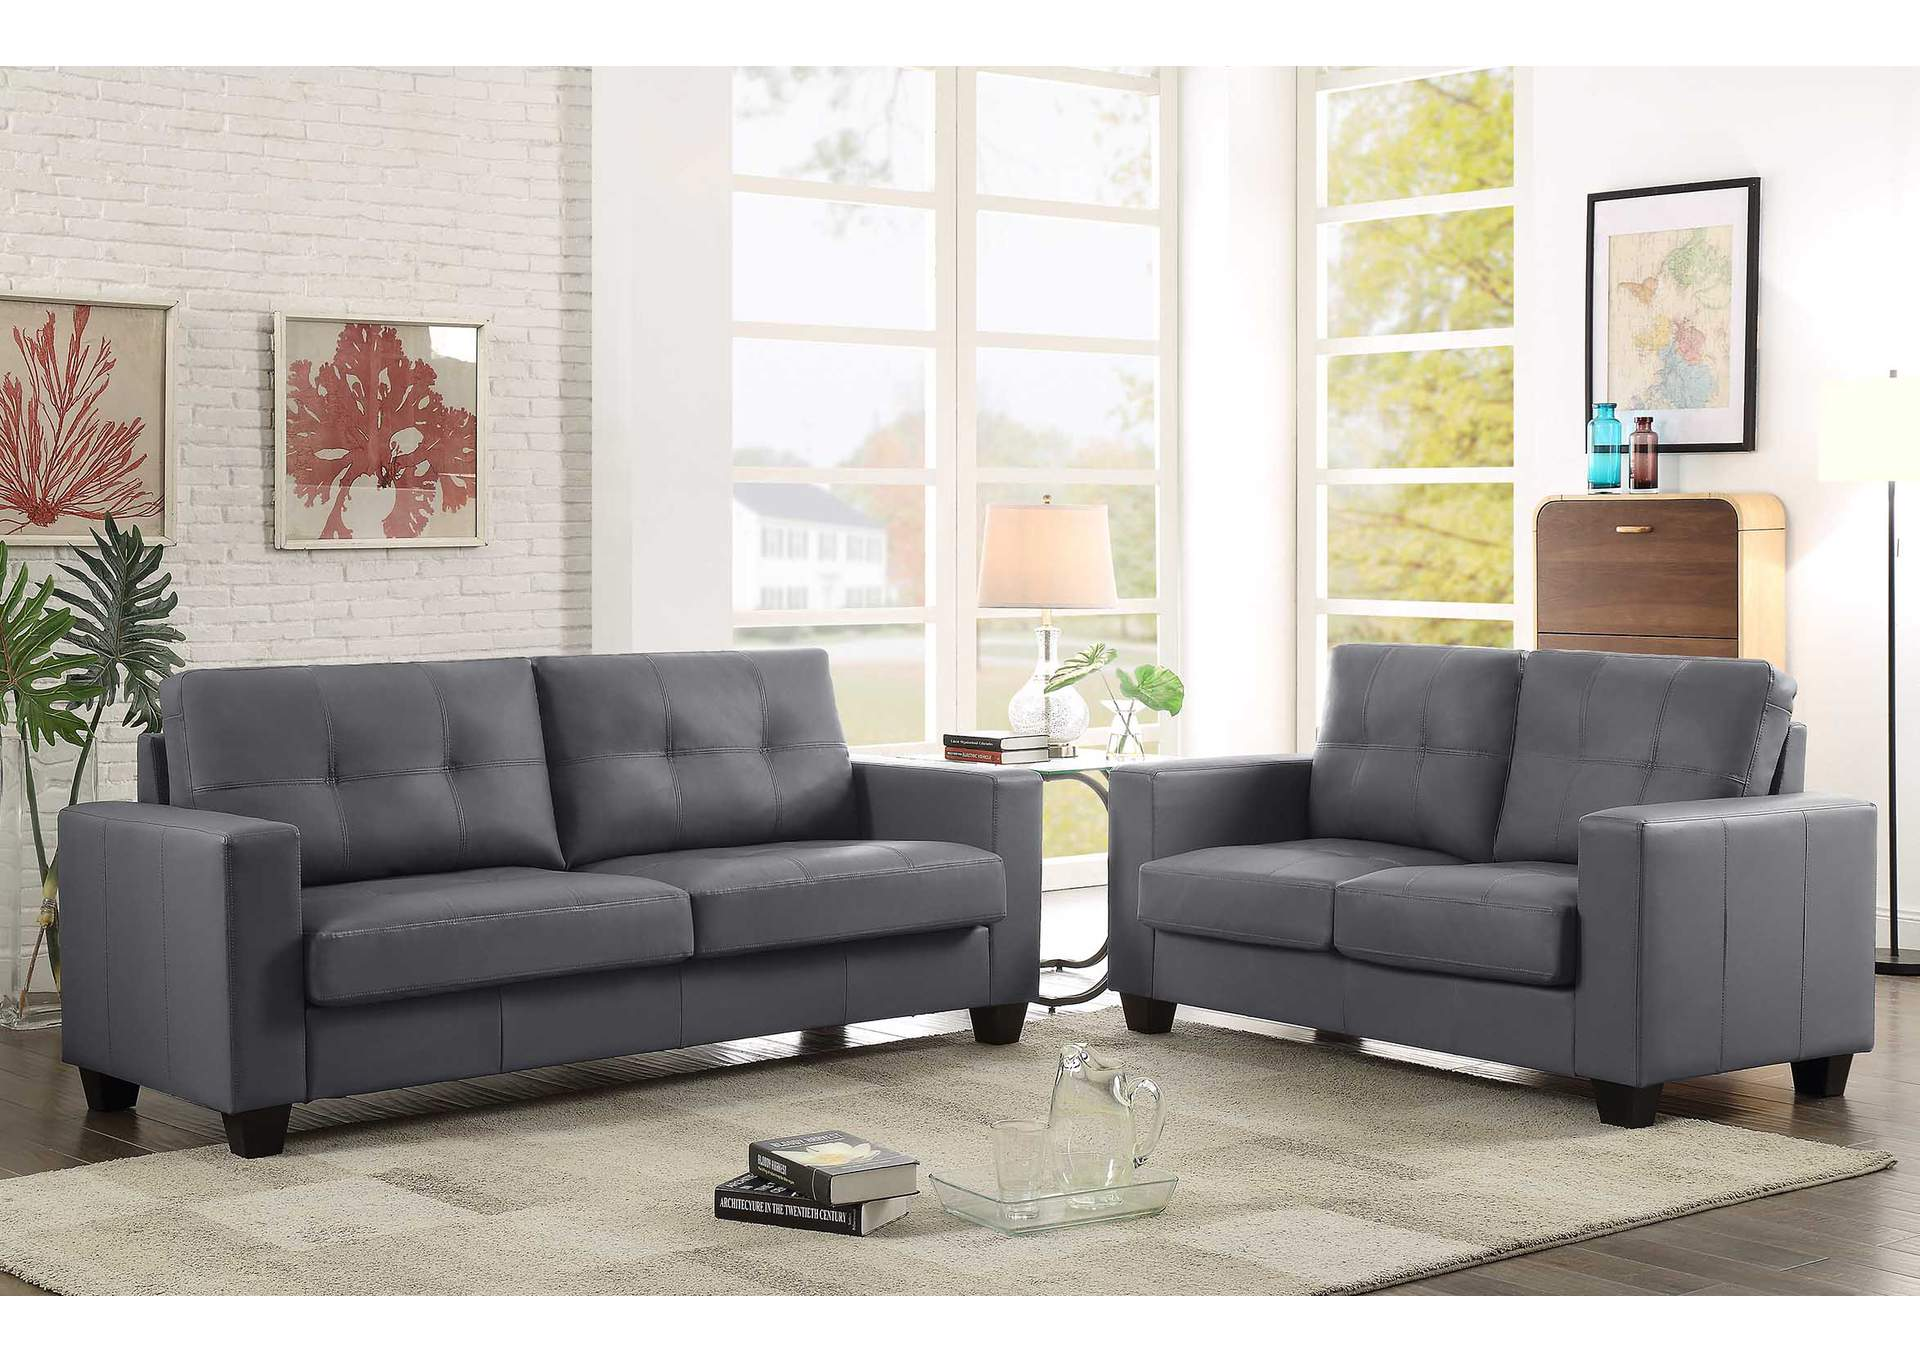 Grey Contemporary Leather Sofa & Loveseat,Global Trading